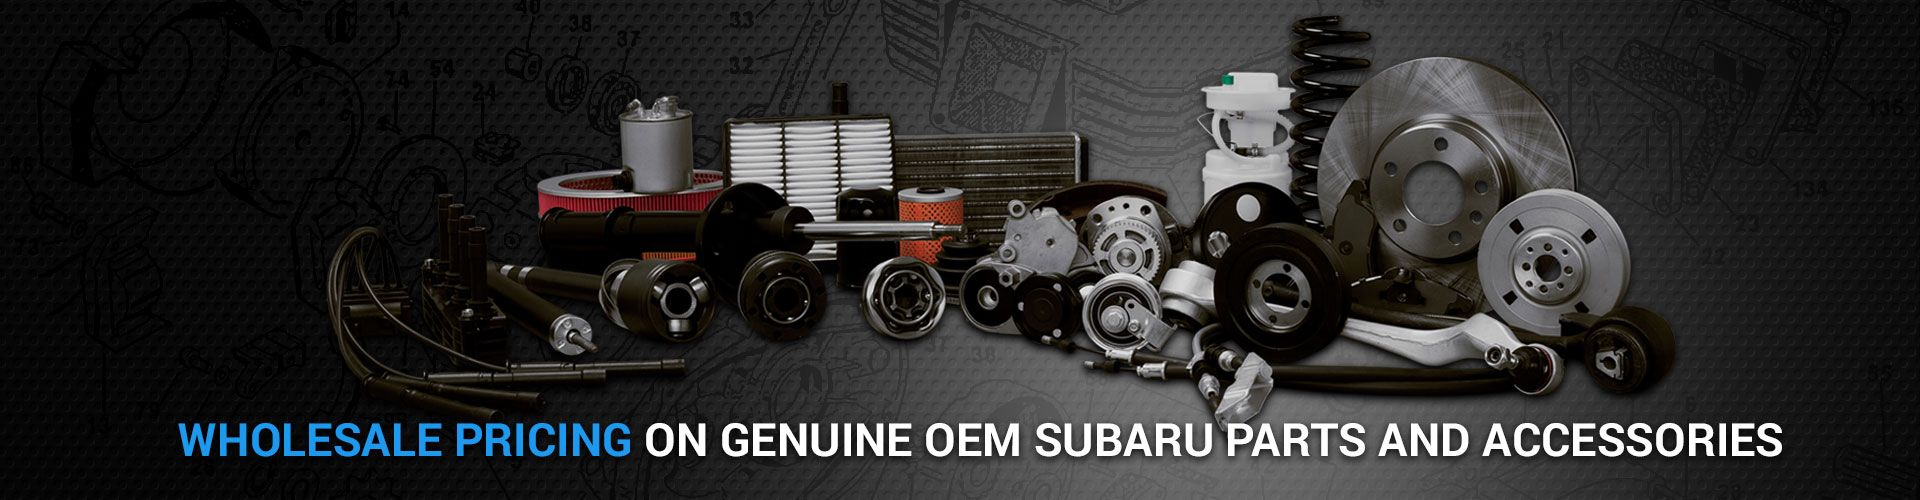 Genuine OEM Subaru Parts and Accessories